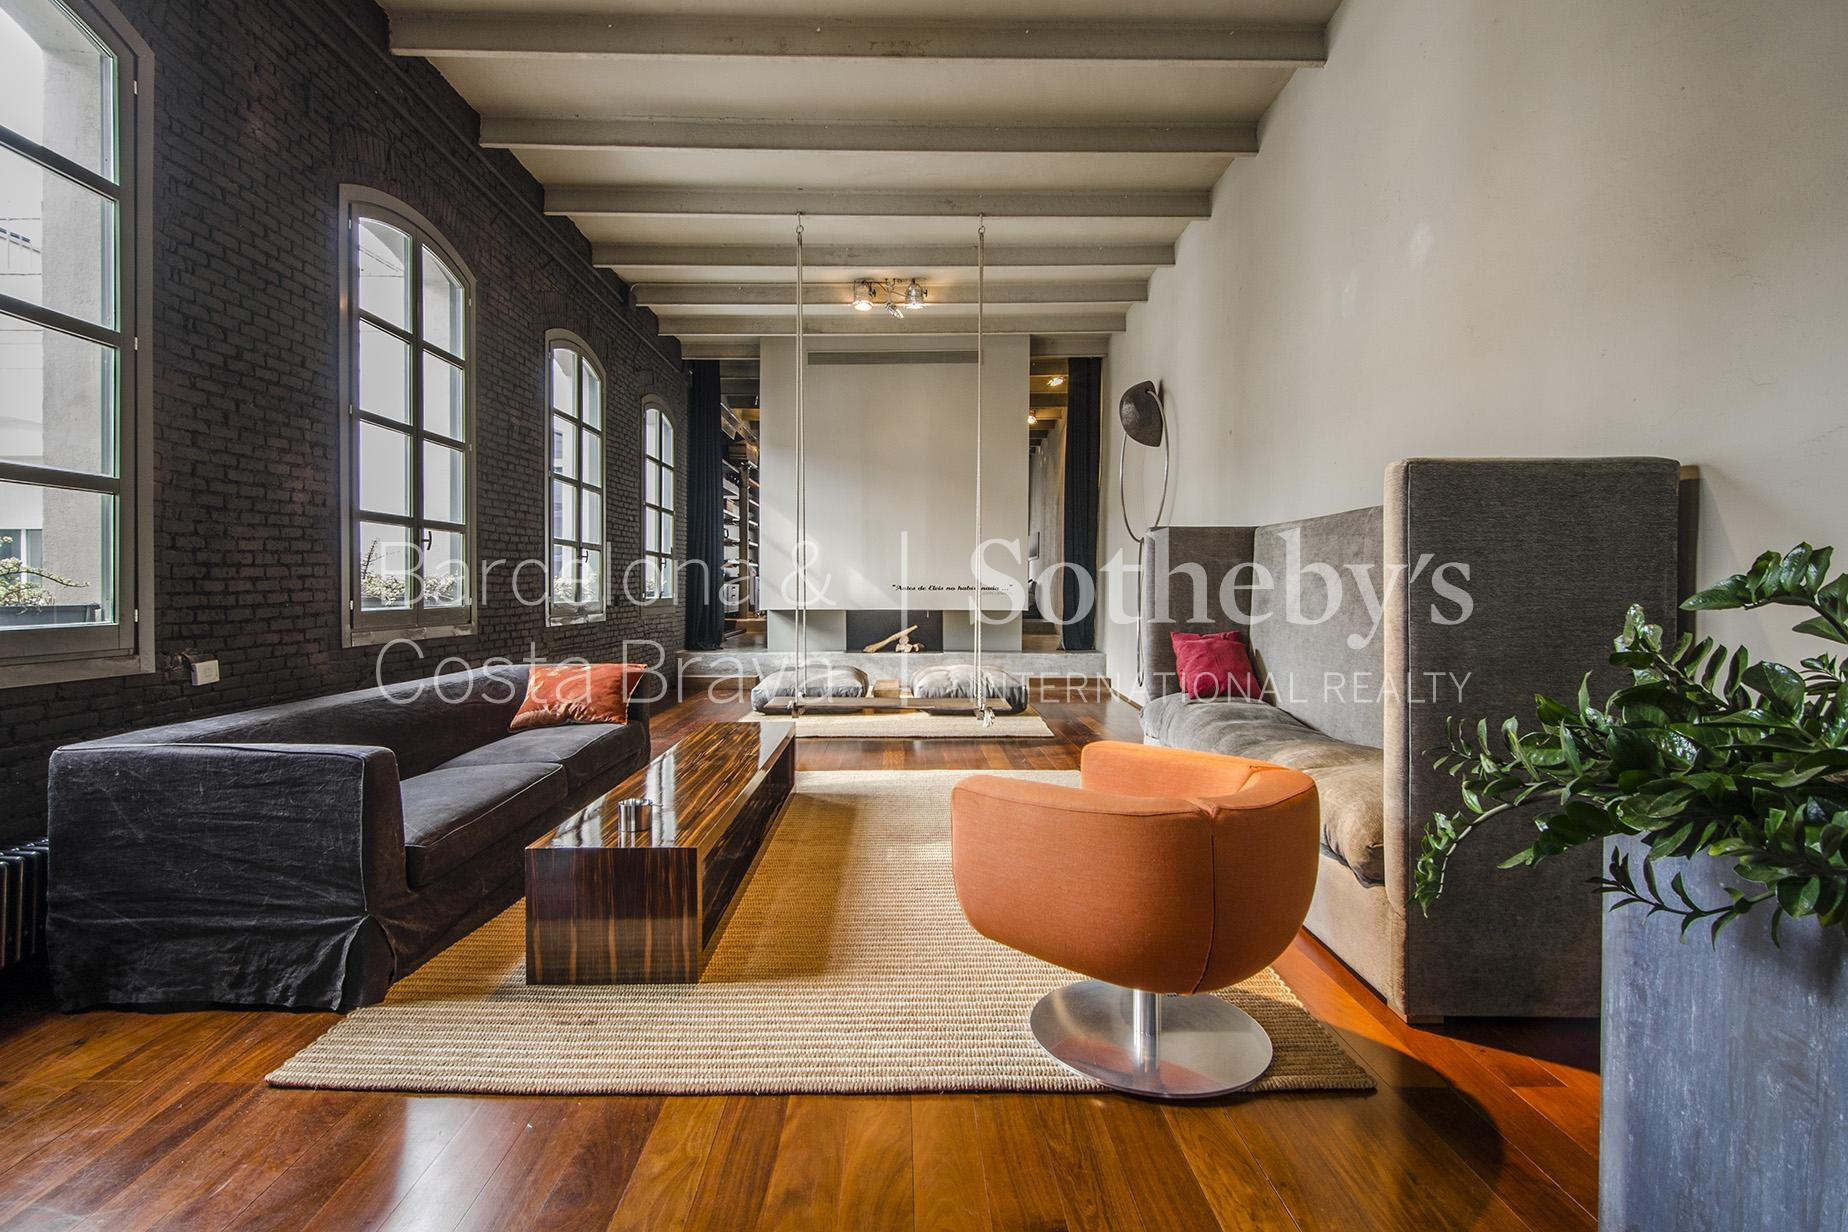 Apartment for Sale at Avant-garde Luxury and Style in Born, Barcelona Old Town Ciutat Vella, Barcelona City, Barcelona 08002 Spain